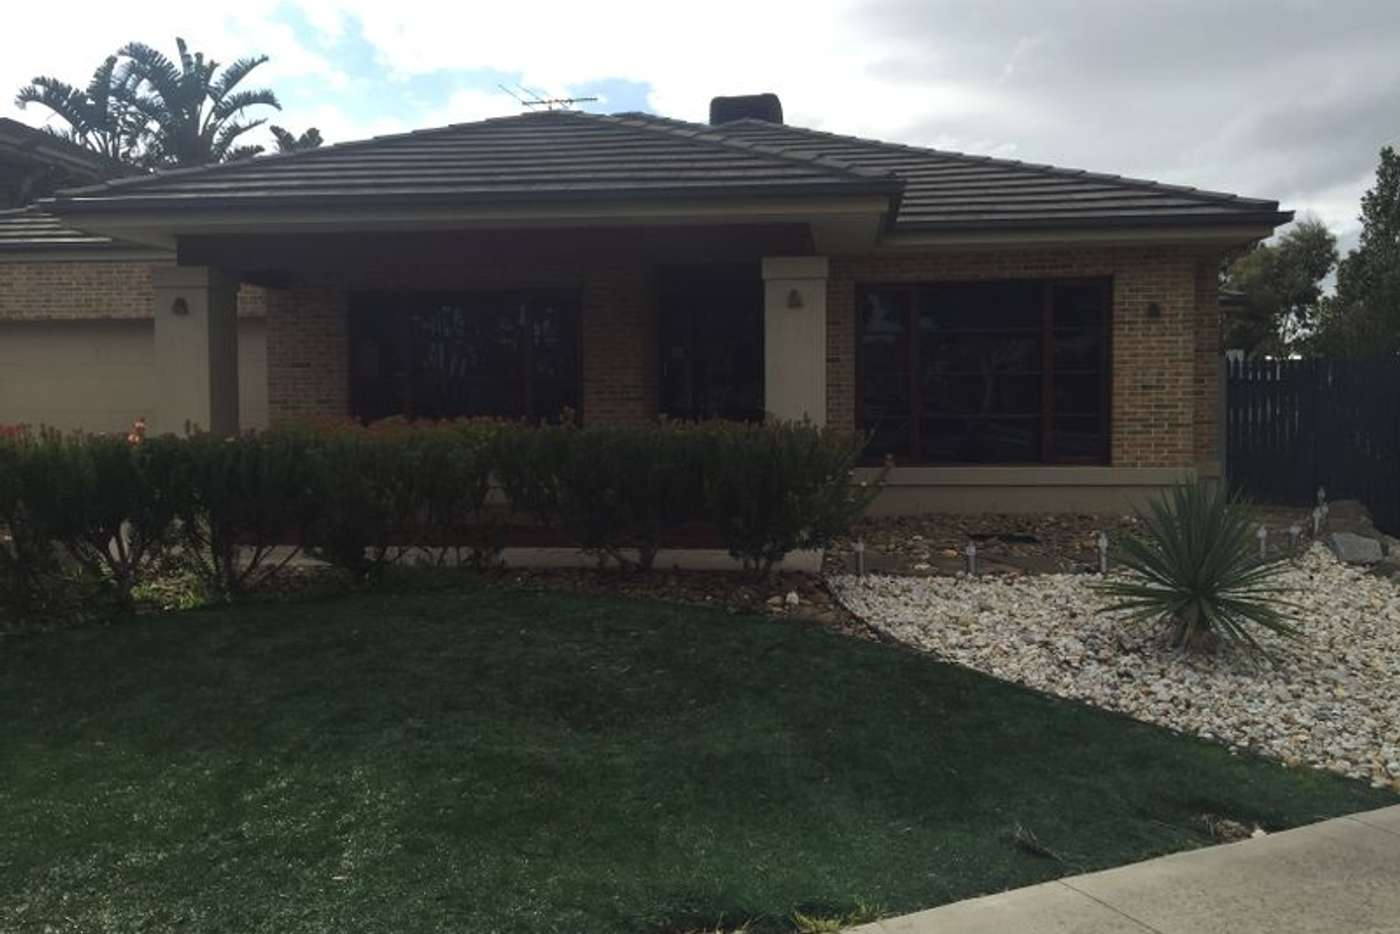 Main view of Homely house listing, 8 Seine Place, Caroline Springs VIC 3023